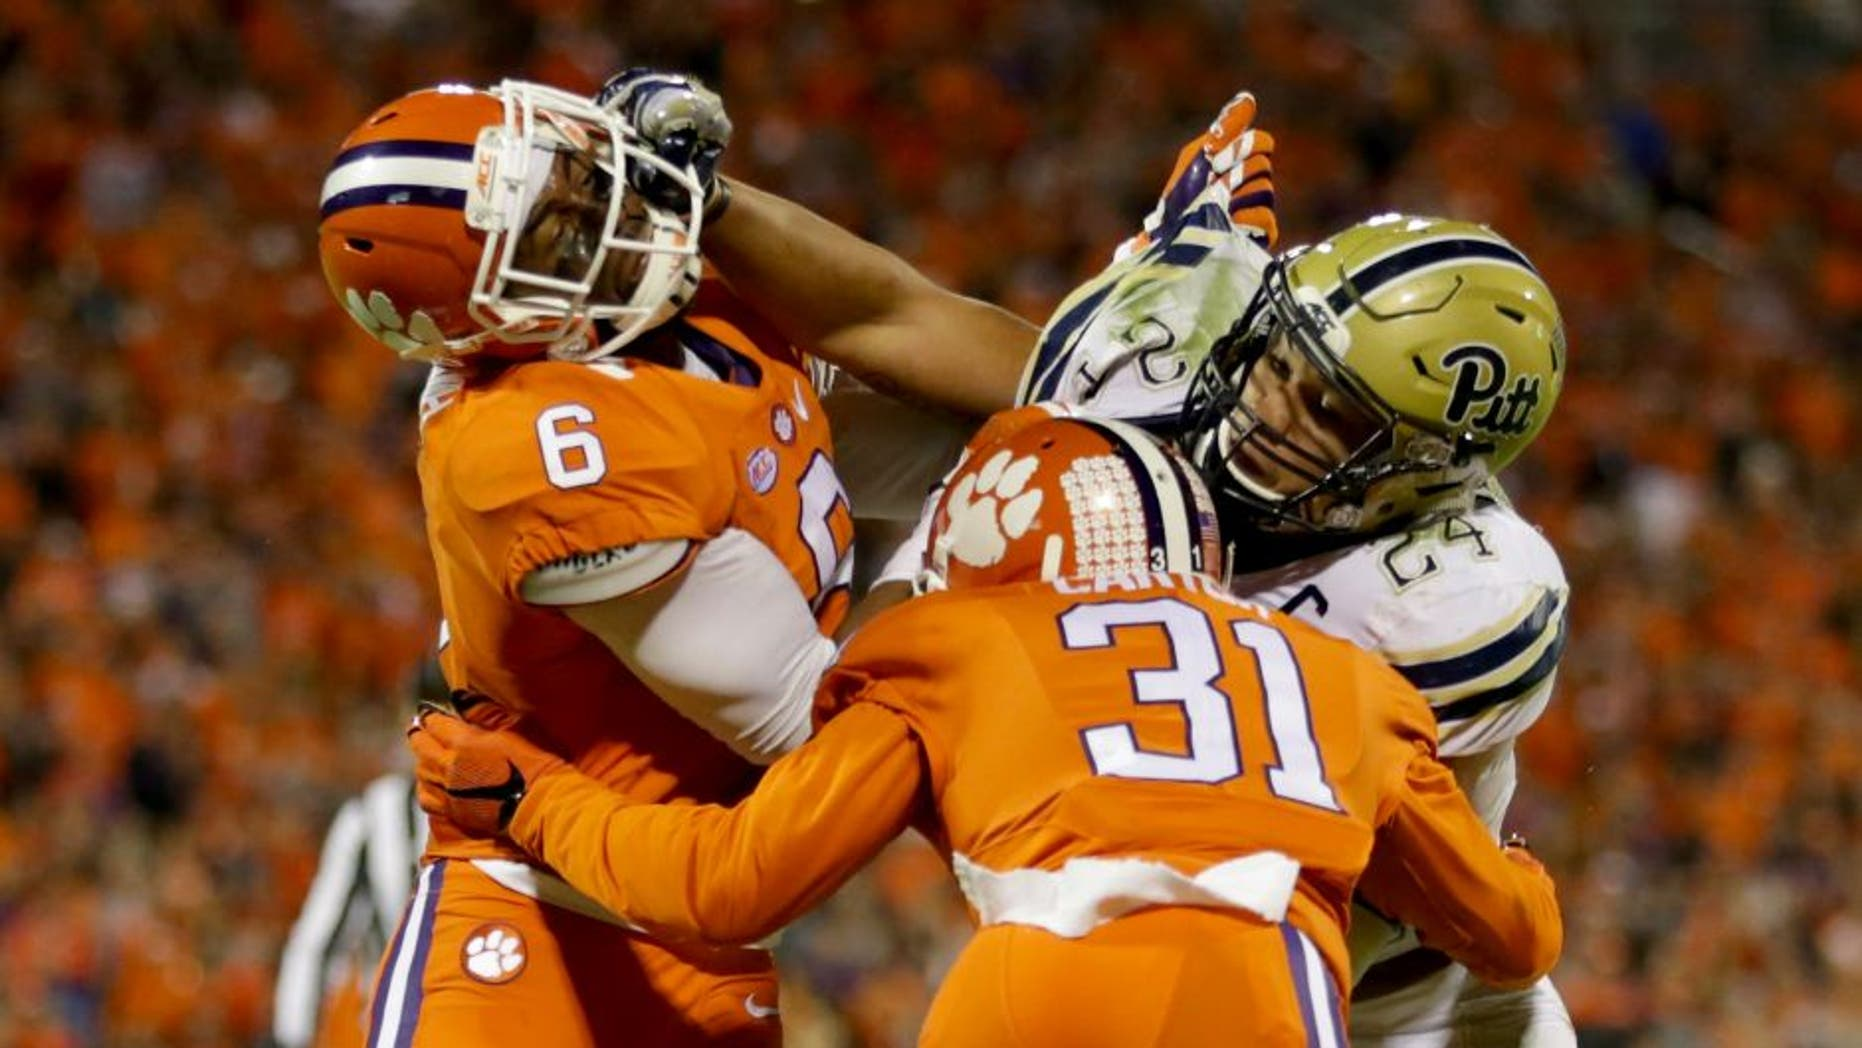 CLEMSON, SC - NOVEMBER 12: Teammates Dorian O'Daniel #6 and Ryan Carter #31 of the Clemson Tigers try to stop James Conner #24 of the Pittsburgh Panthers during their game at Memorial Stadium on November 12, 2016 in Clemson, South Carolina. (Photo by Streeter Lecka/Getty Images)